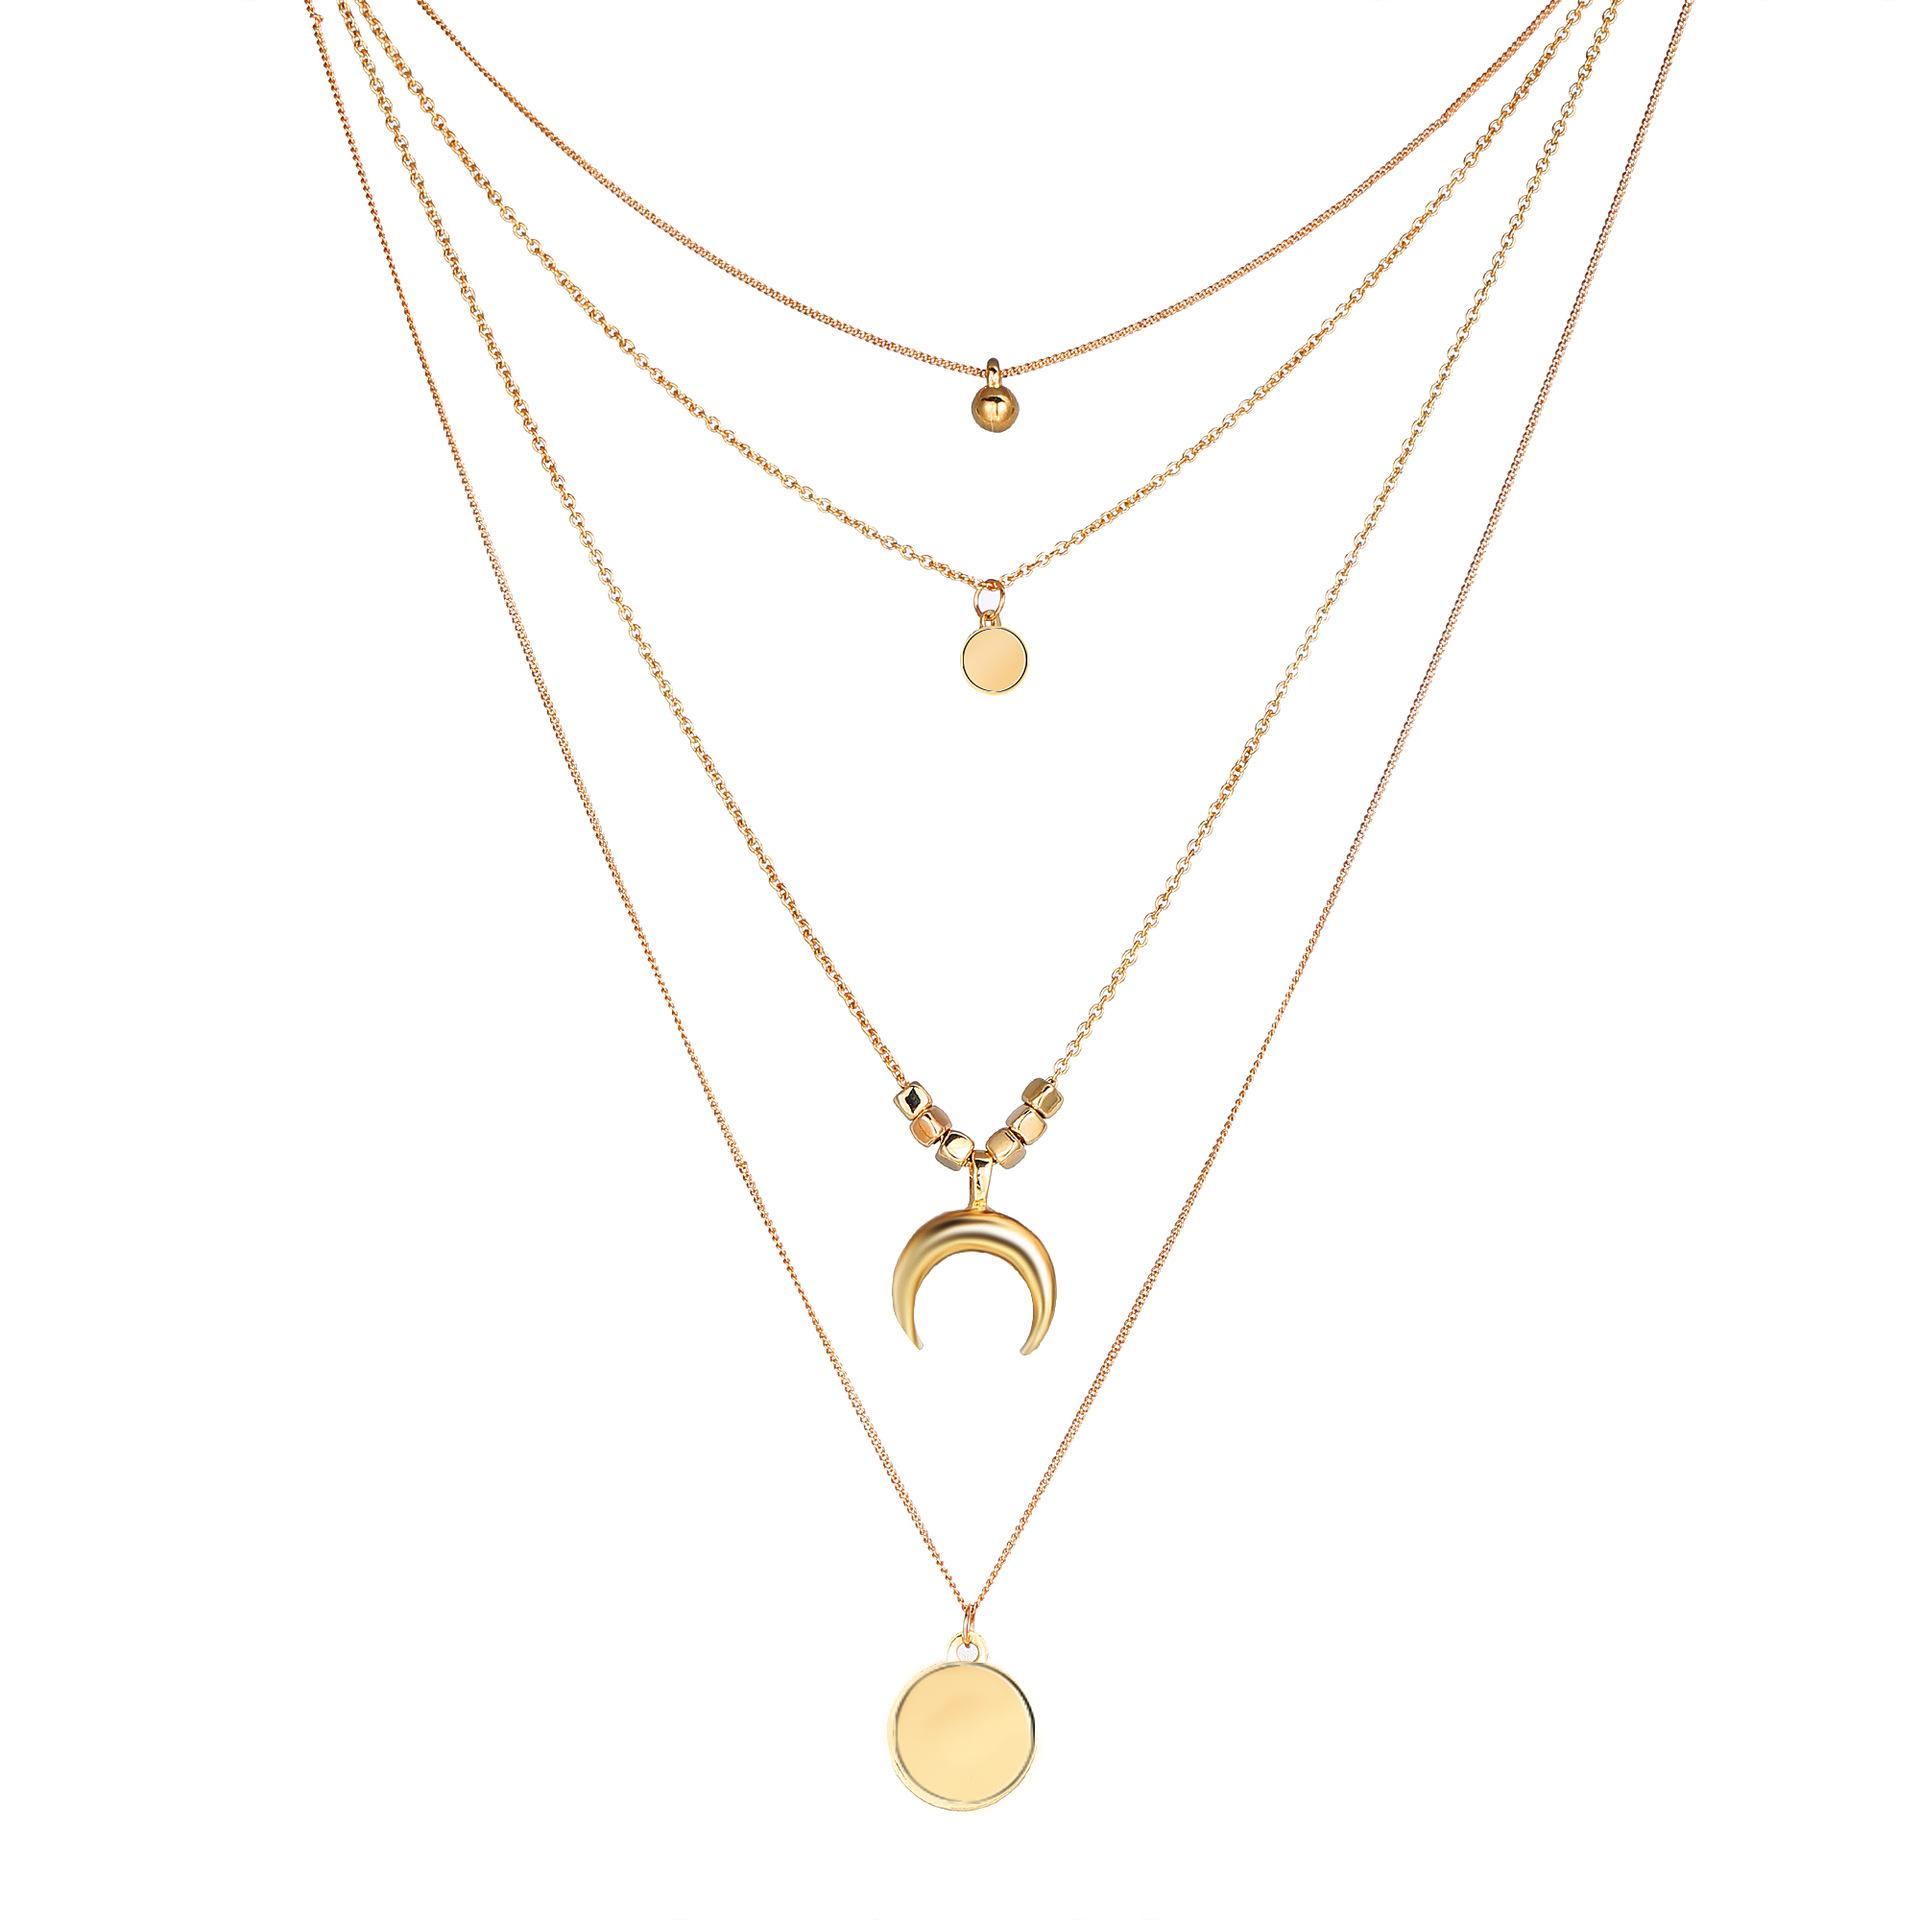 5c98319262 Wholesale Jewelry Fashion Personality Multi Layer Moon Round Film Pendant  Female Necklace Wholesale Horse Pendant Necklace Cute Pendant Necklaces  From ...